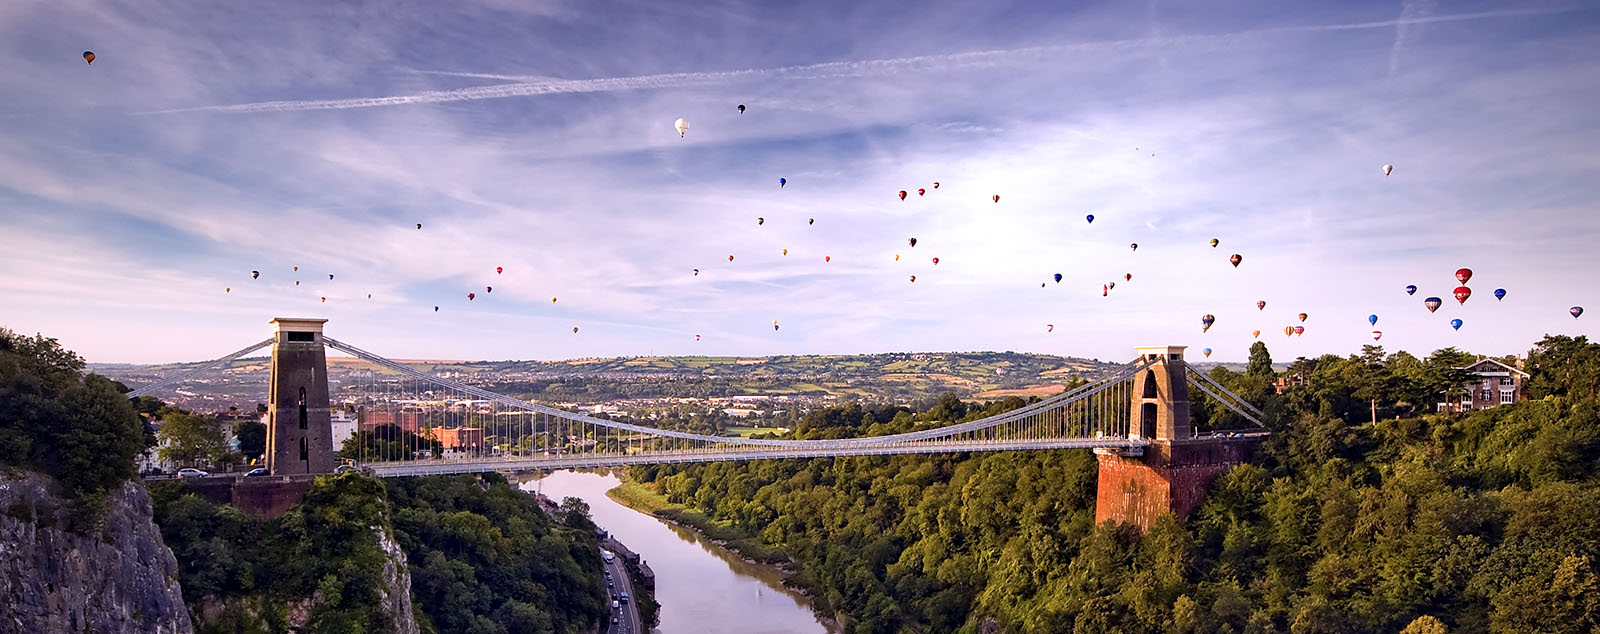 Bristol bridge against the sky filled with hot air balloons